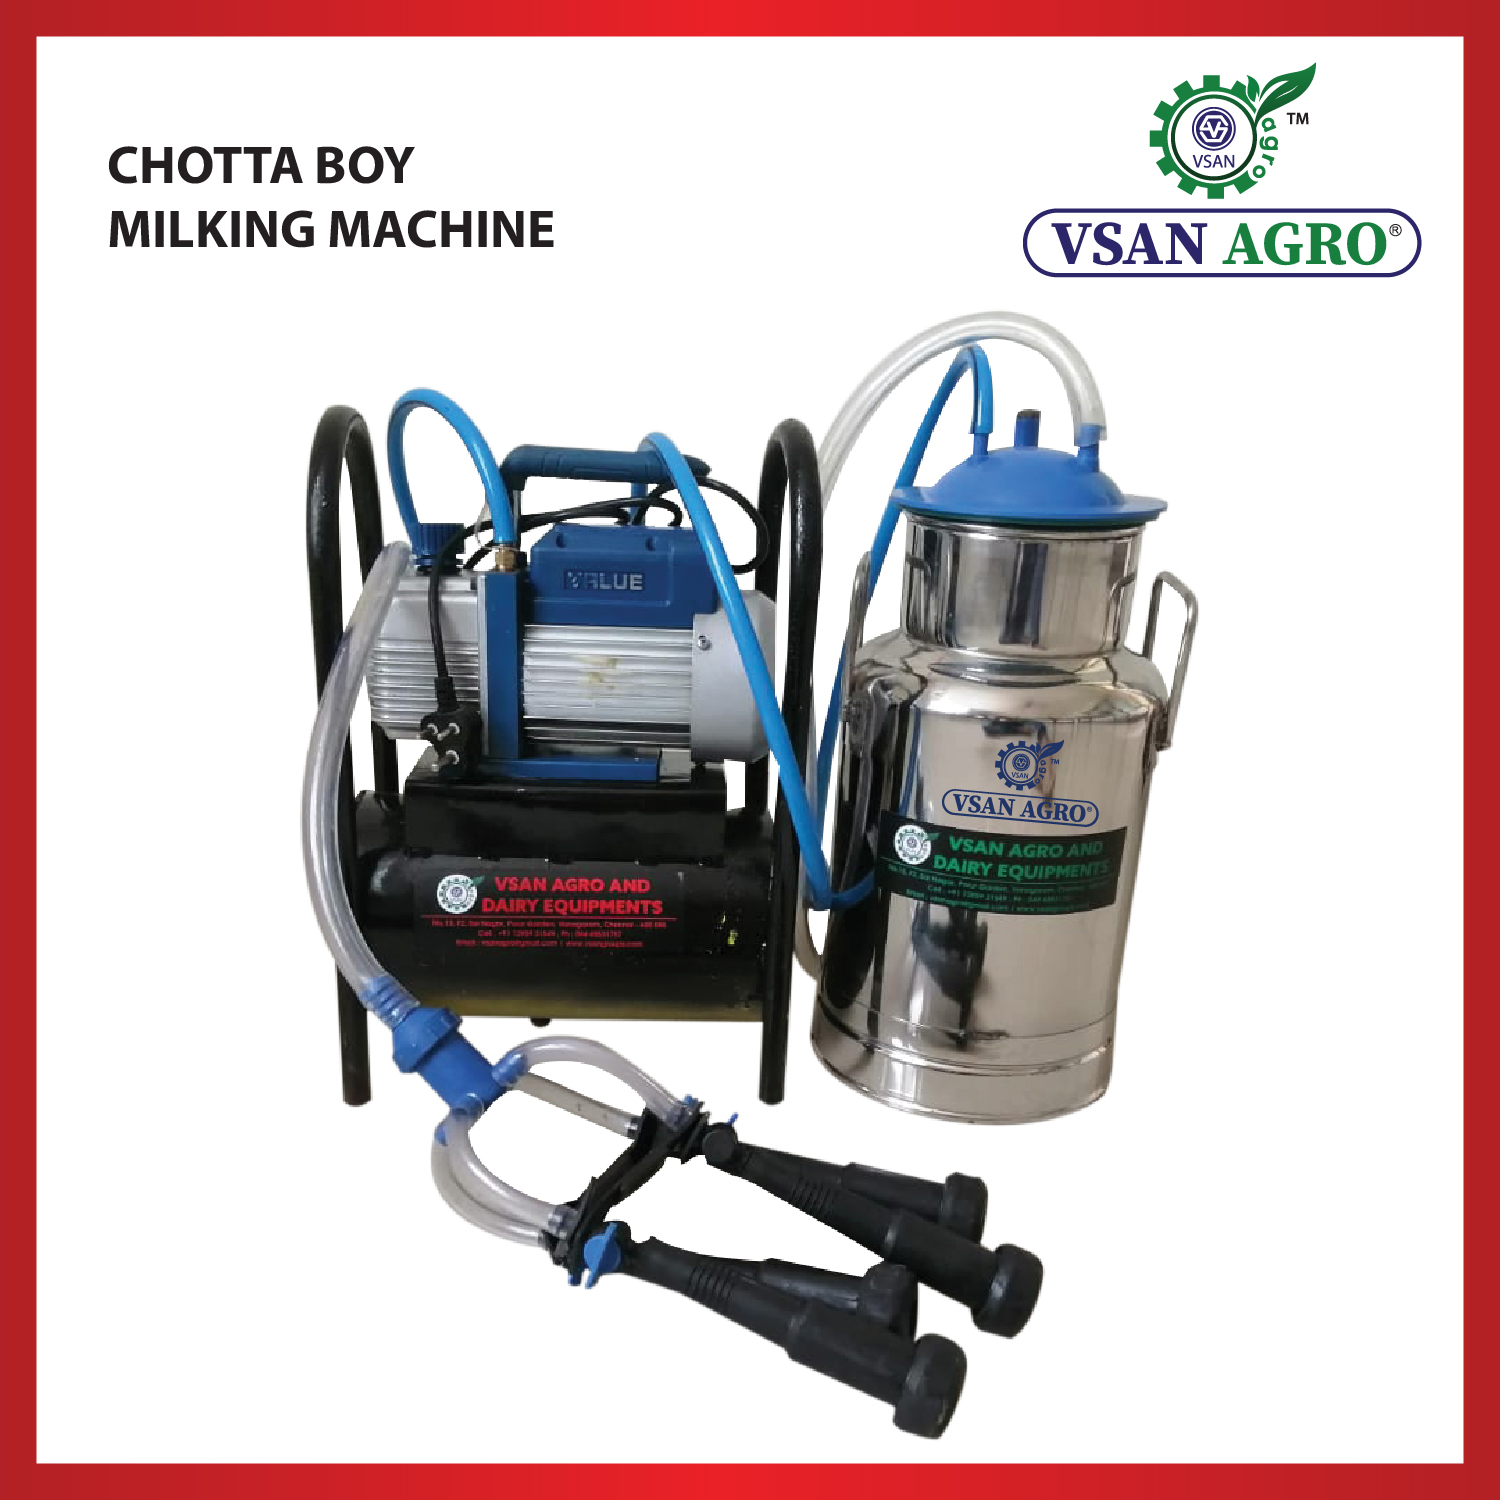 VSAN Chotta Boy Milking Machine